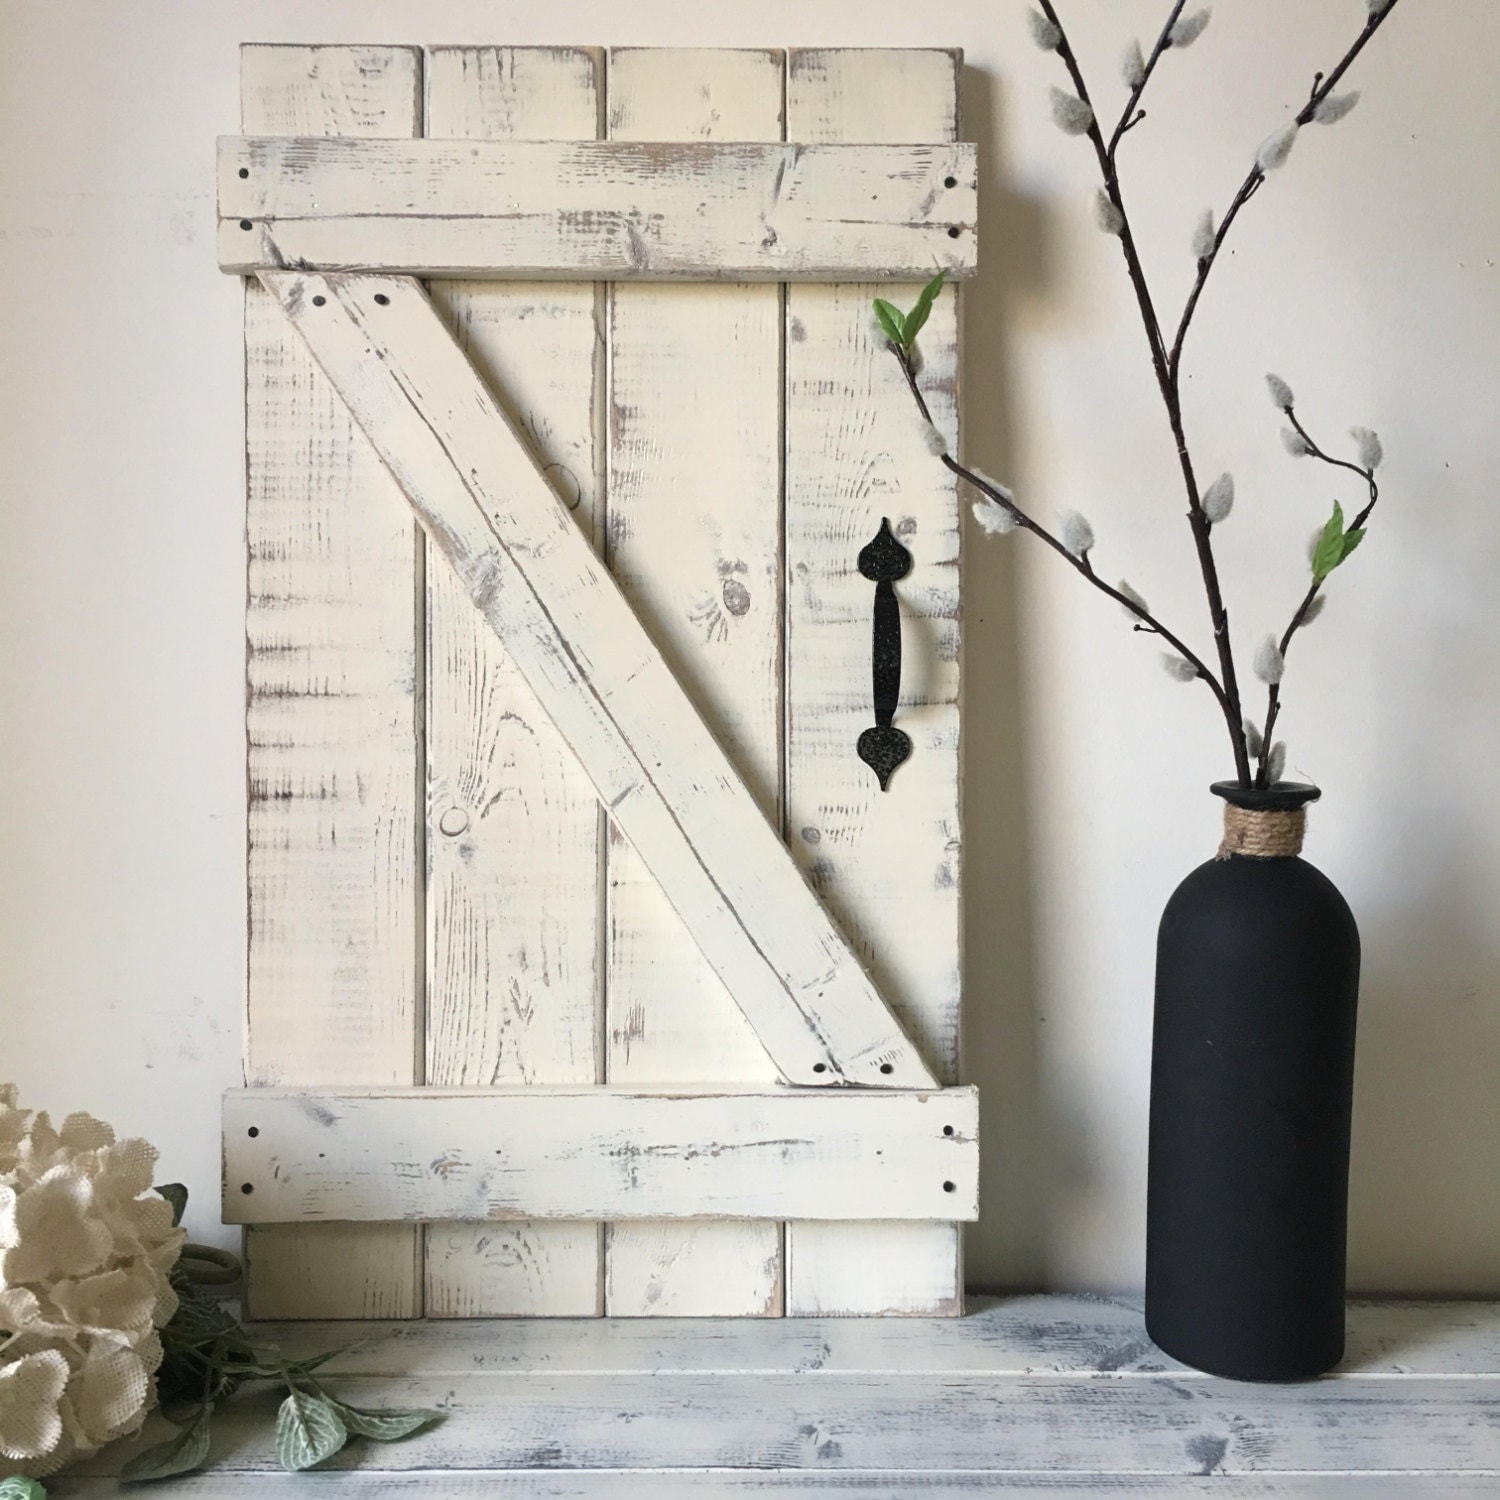 Mini barn door wall hanging wood shutters barn door decor for Wall hanging